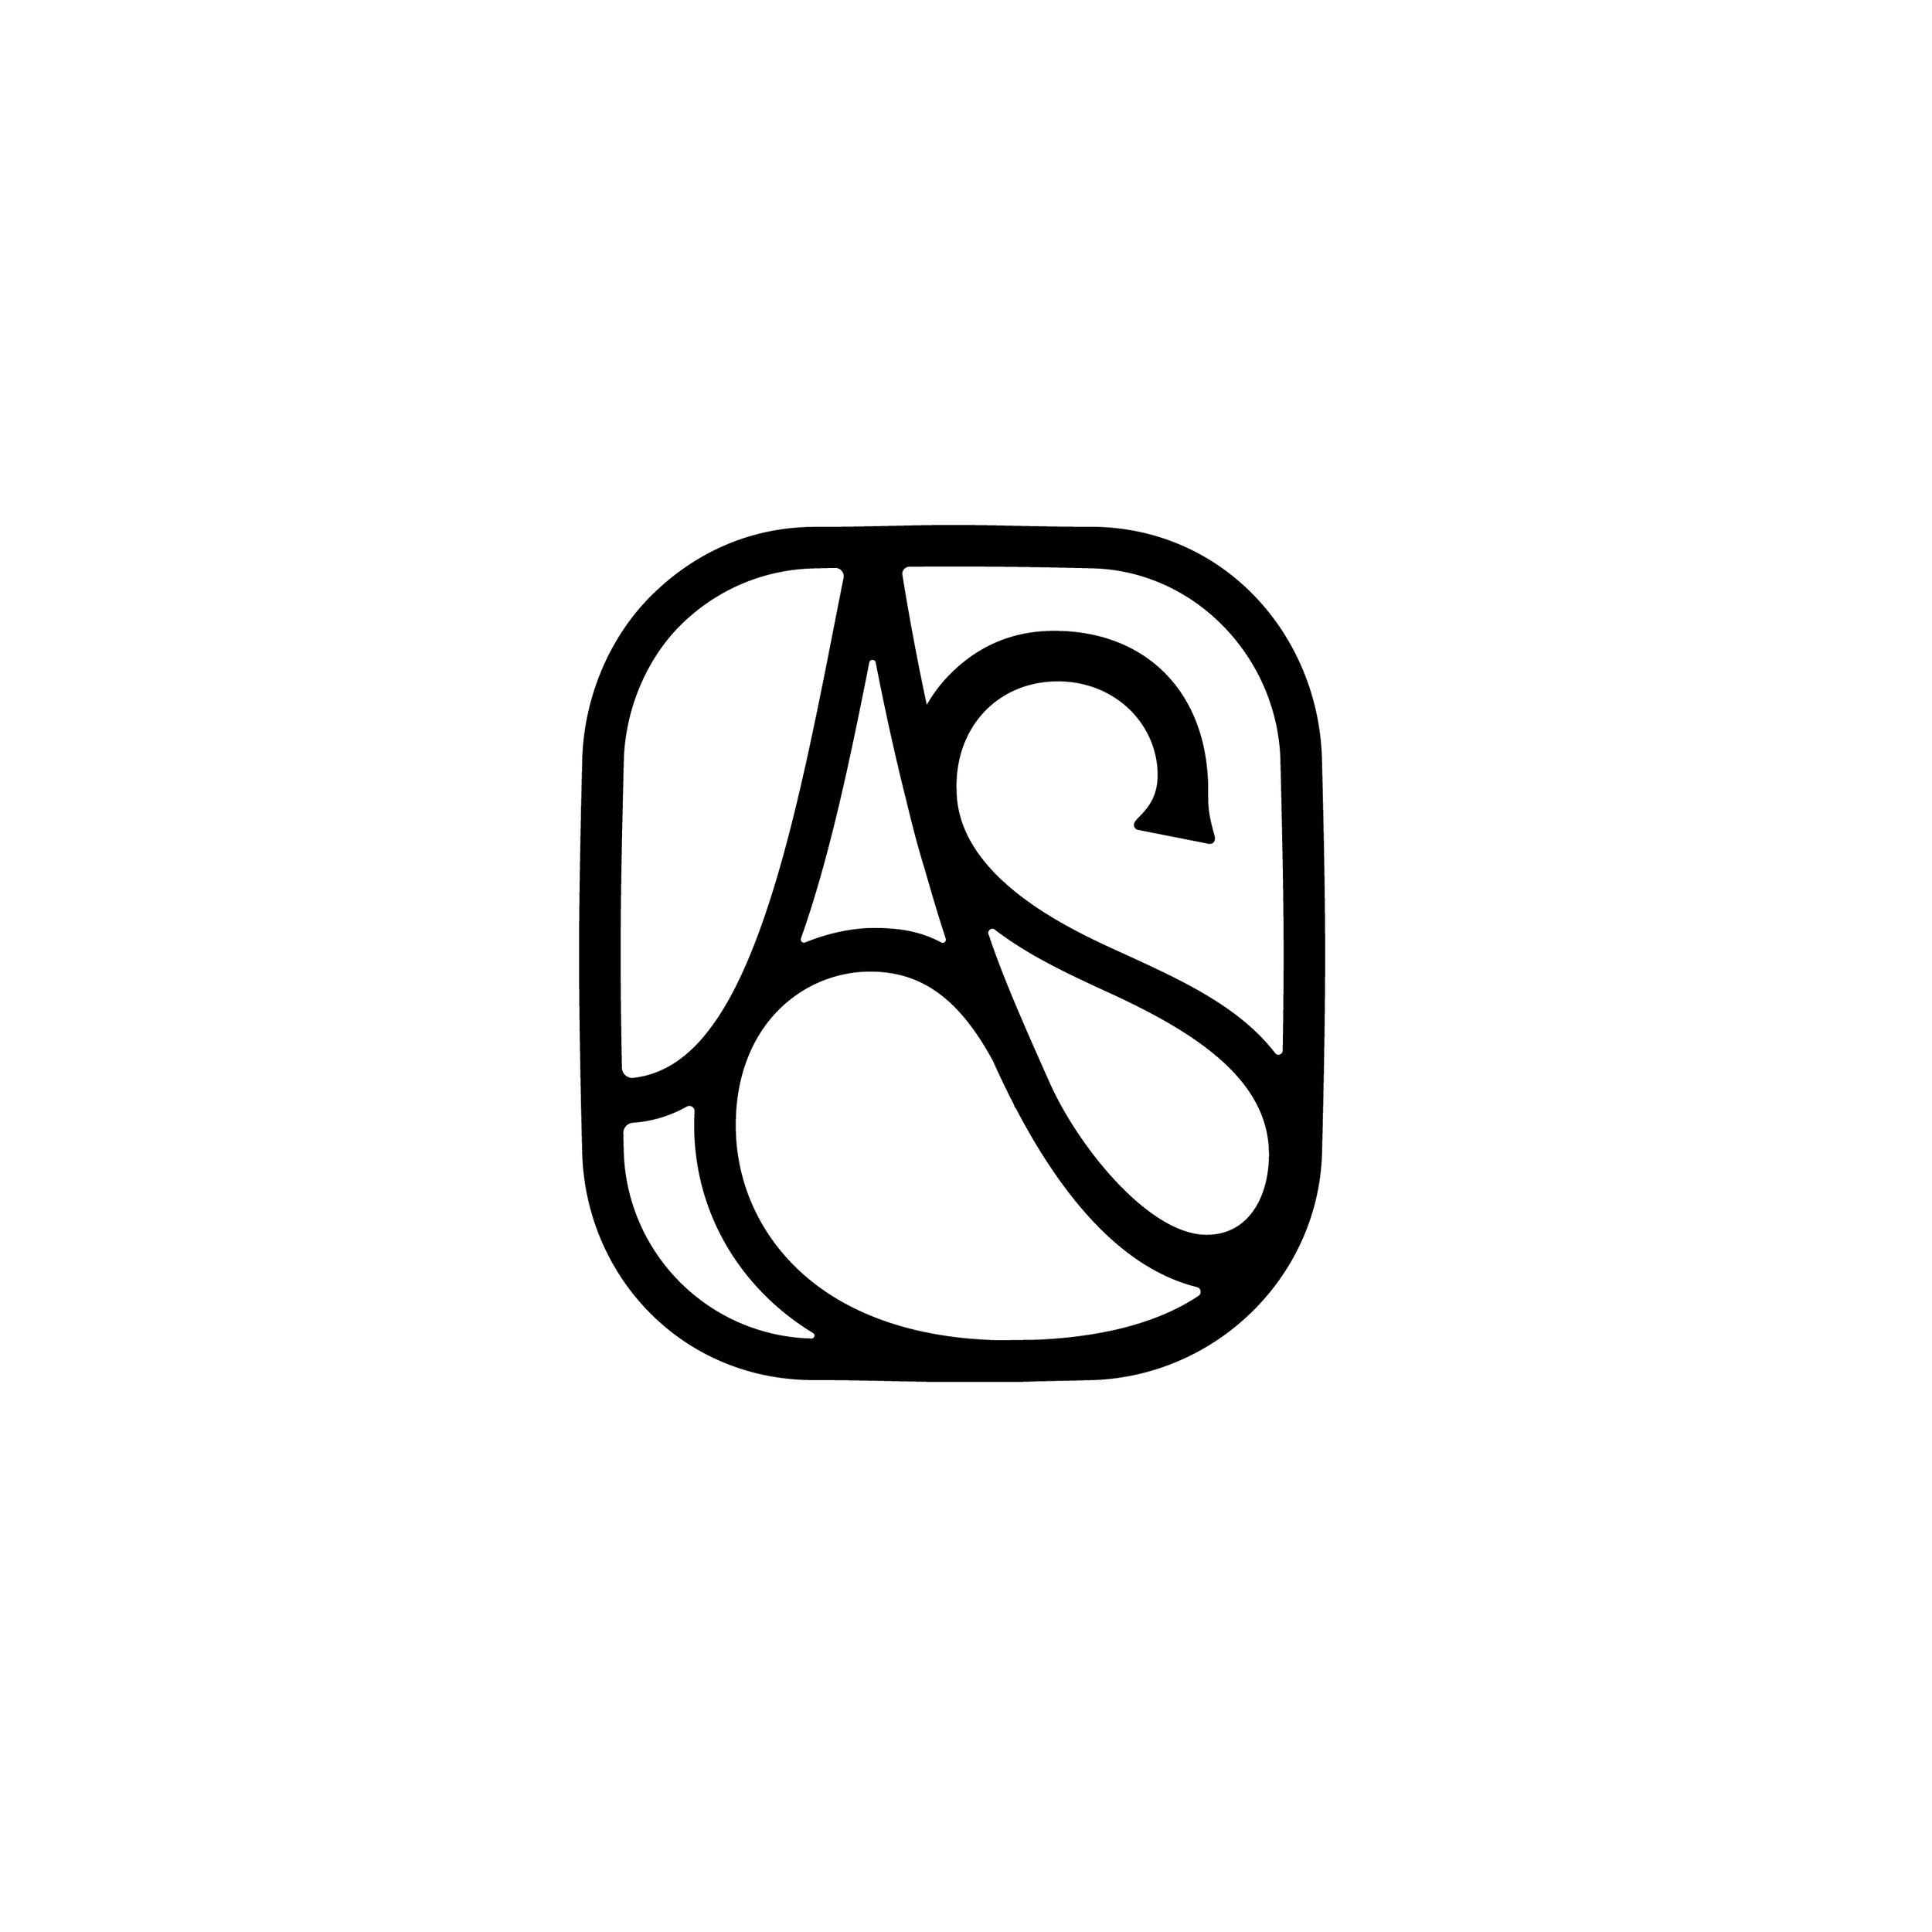 As Monogram The Design Studio Of Jeremy Friend